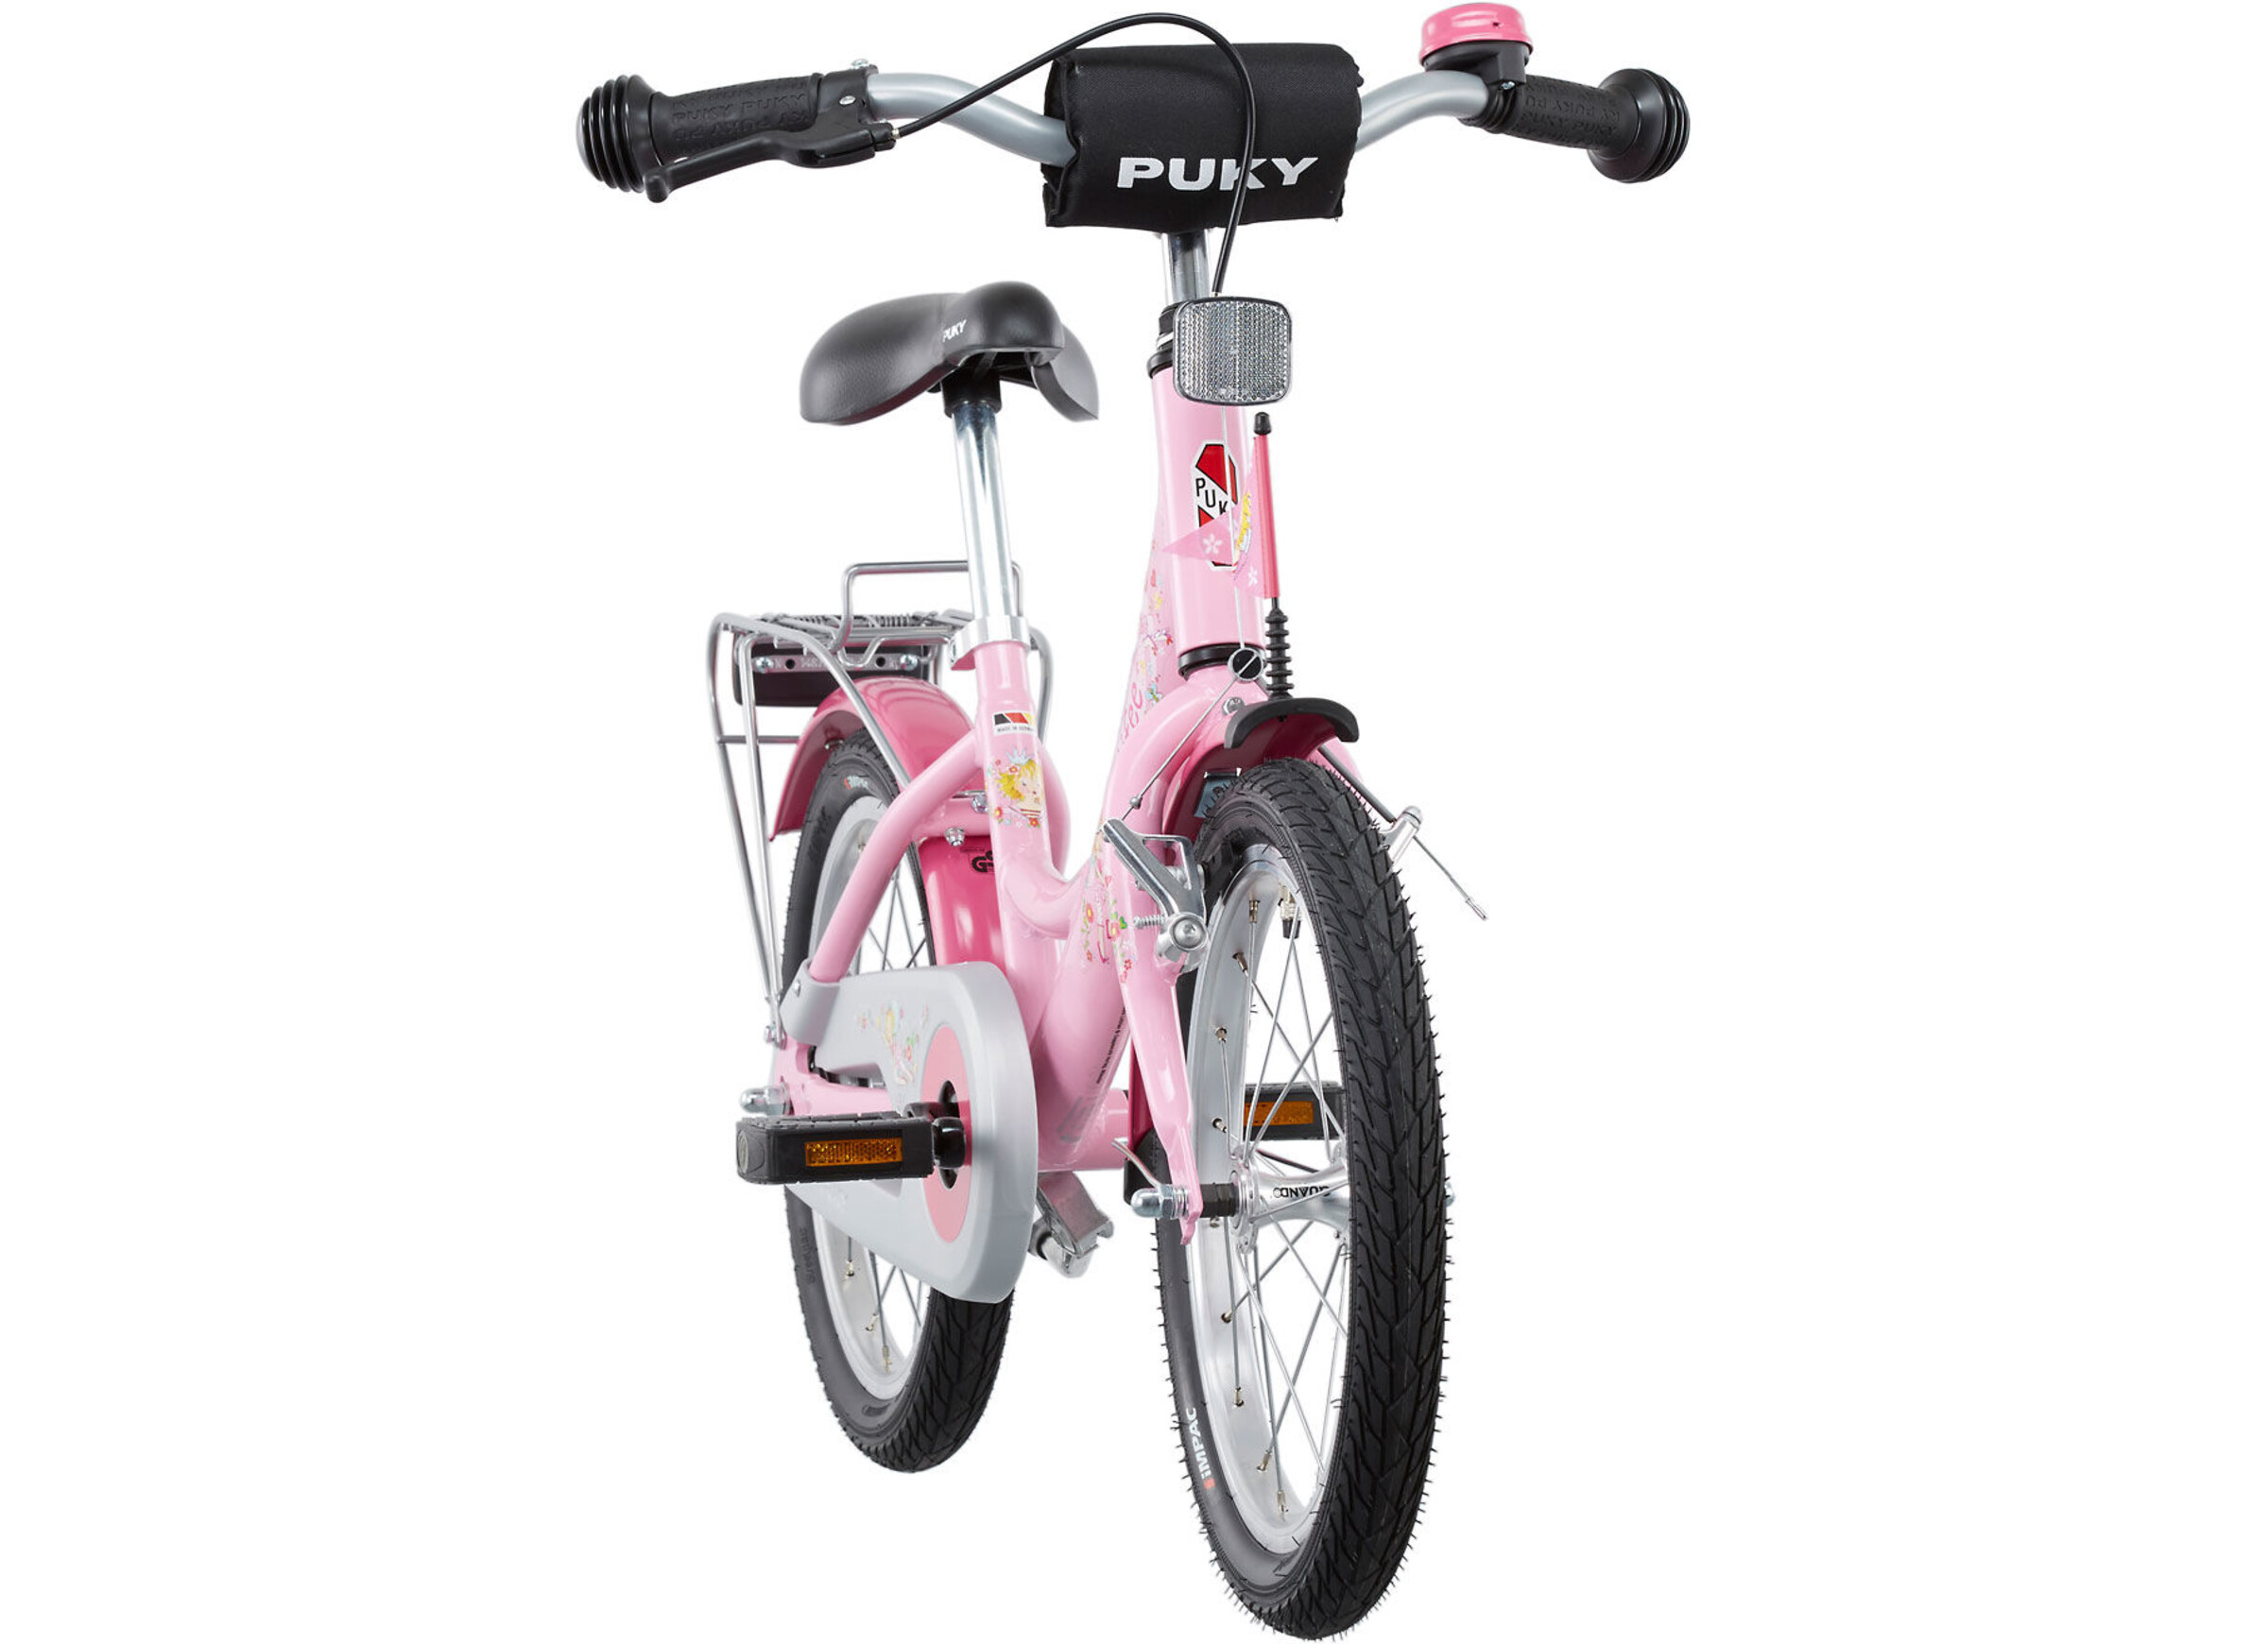 puky zl 16 1 alu kinderfahrrad 16 lillifee online bei. Black Bedroom Furniture Sets. Home Design Ideas